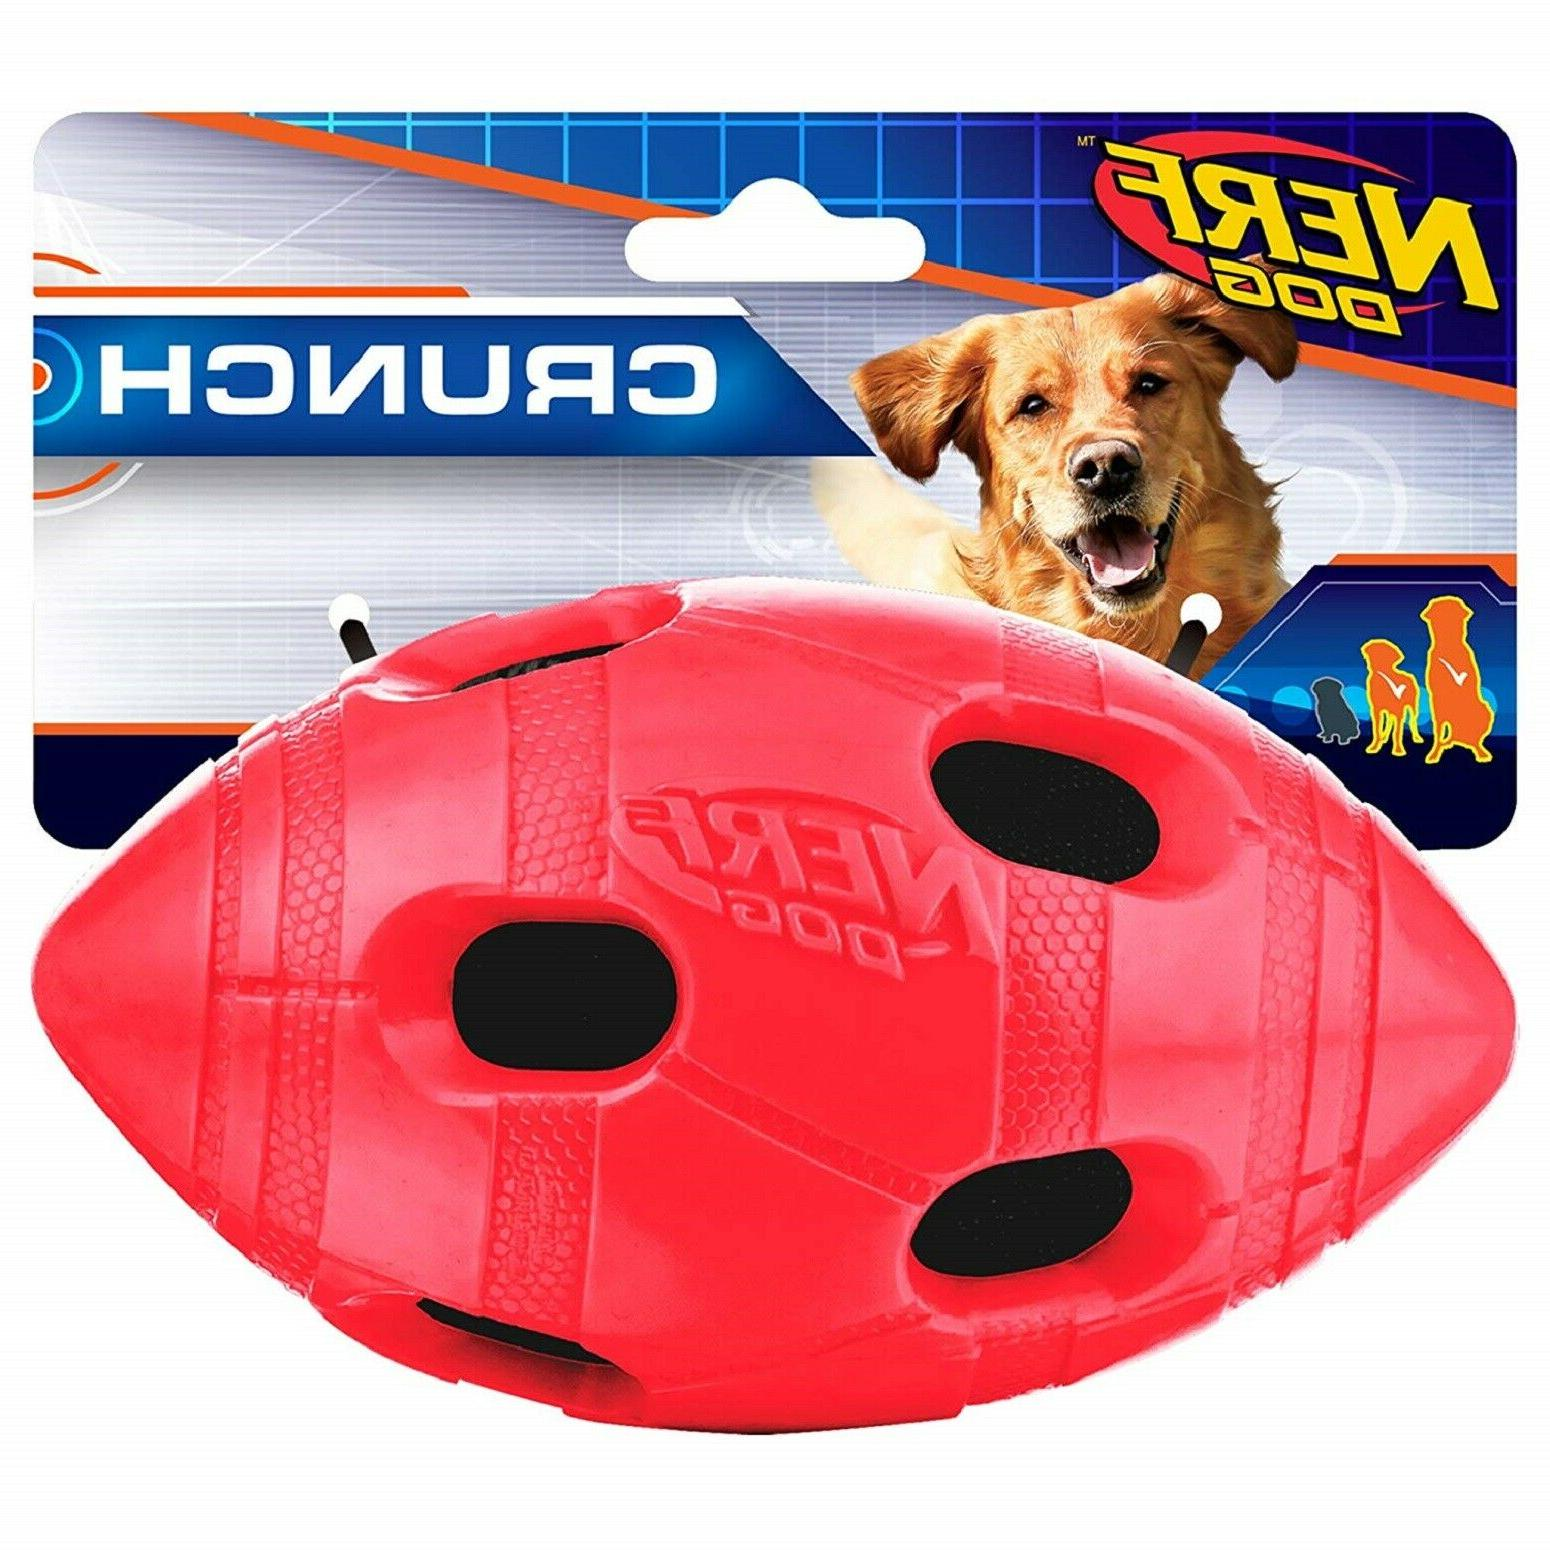 Nerf 6in Bash Drool-worthy Dog 1398 Large